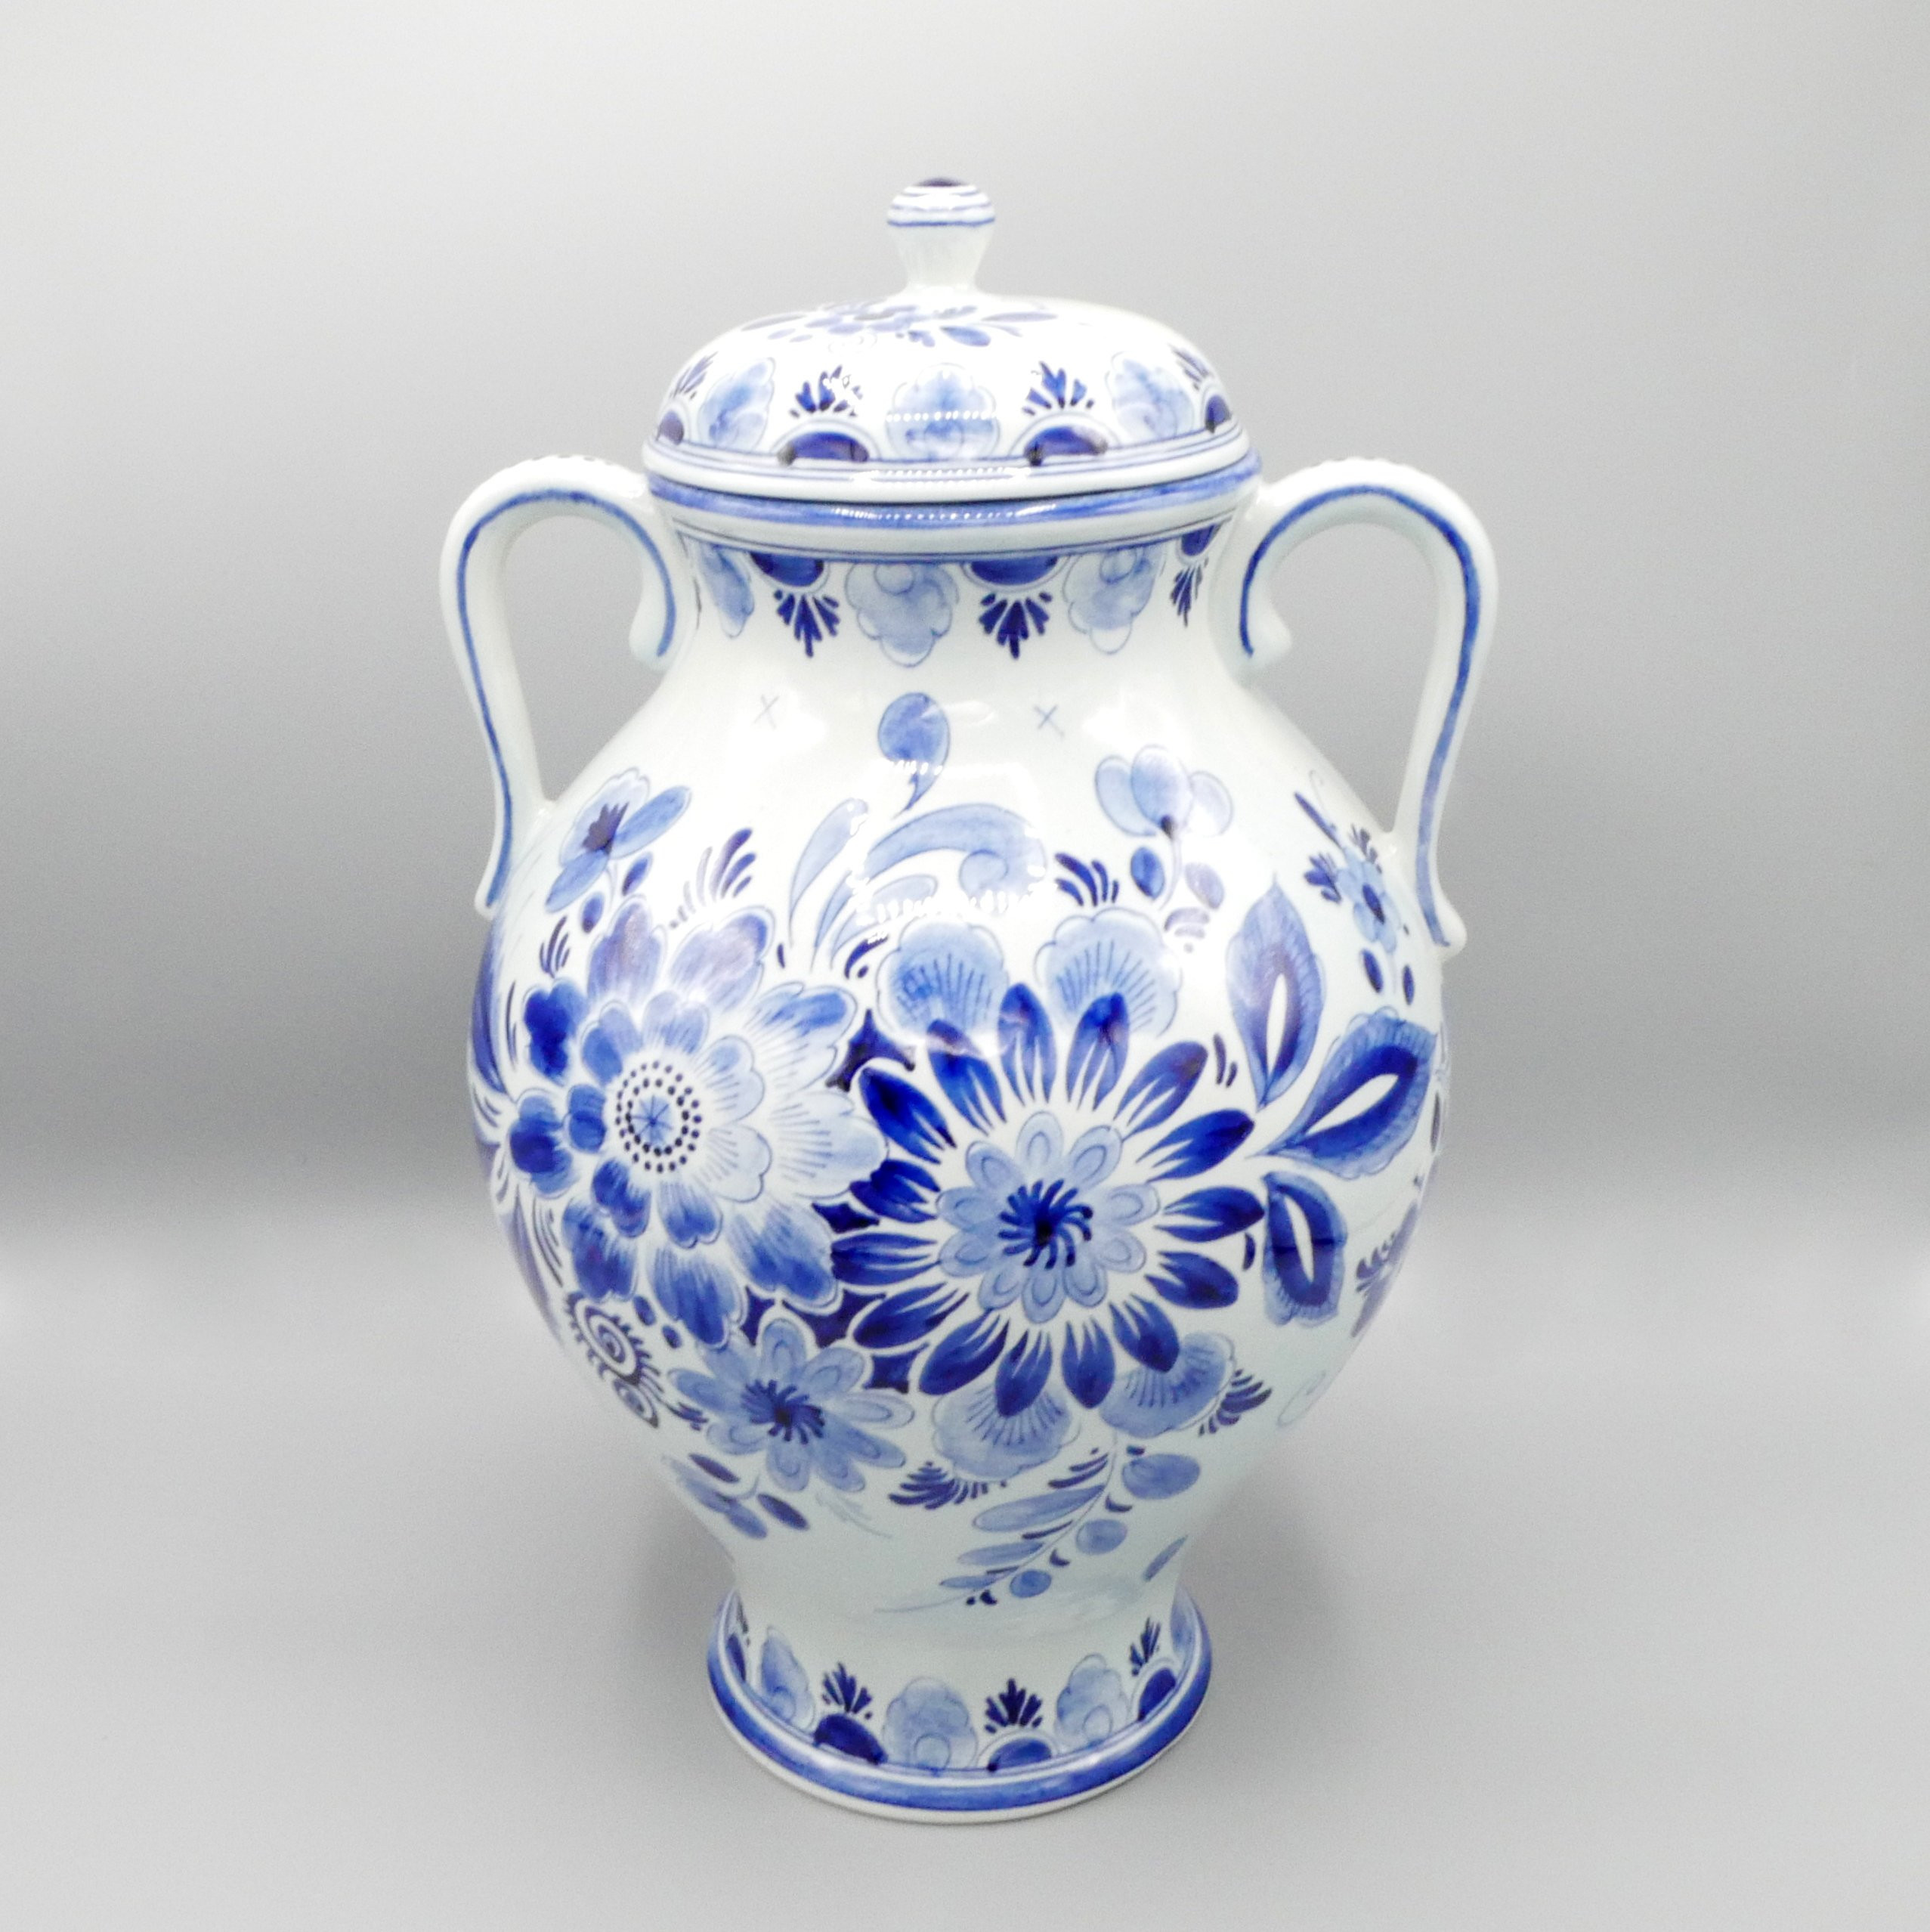 10 attractive Delft Holland Vase 2021 free download delft holland vase of delft blue vase h32cm lidded vase blue white handpainted etsy inside dc29fc294c28ezoom